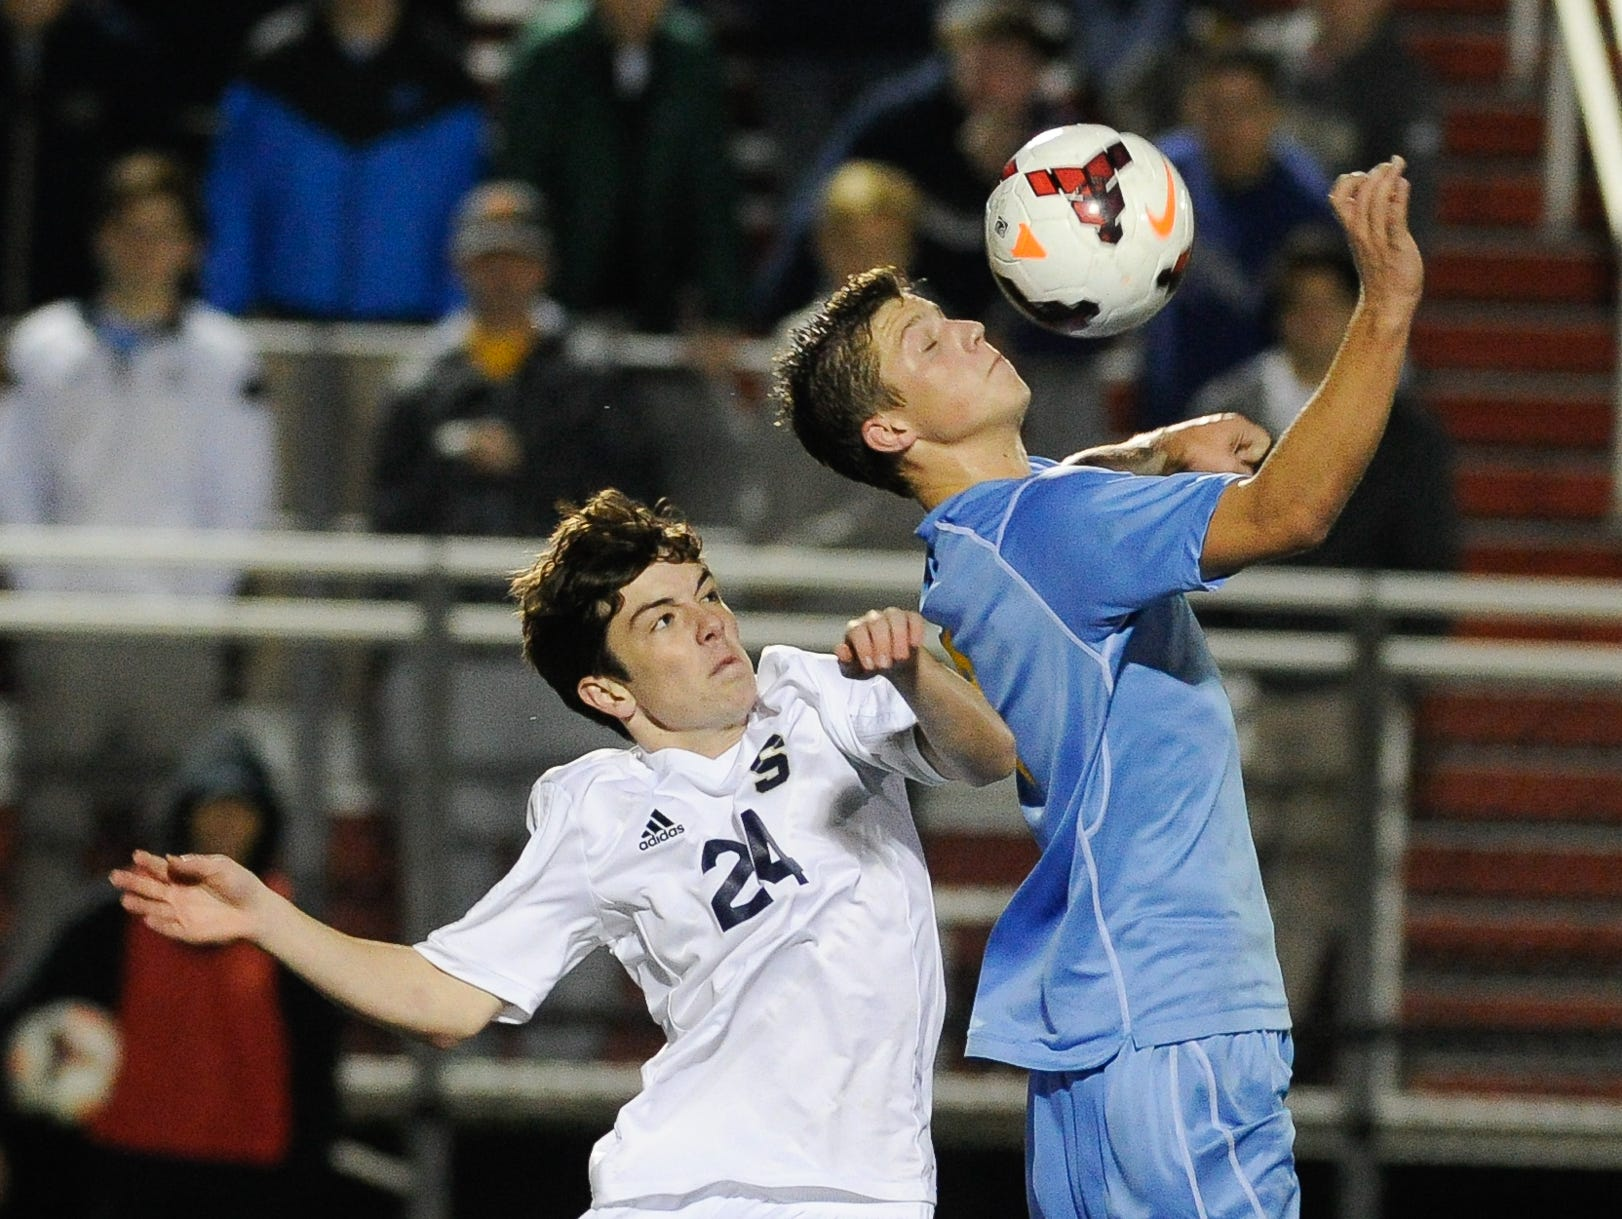 Cape Henlopen's #2 Jack Ashby gains control of the ball over Salesianum's #24 John Leonard in the second half of the DIAA Division I soccer semifinal game at Smyrna High School.